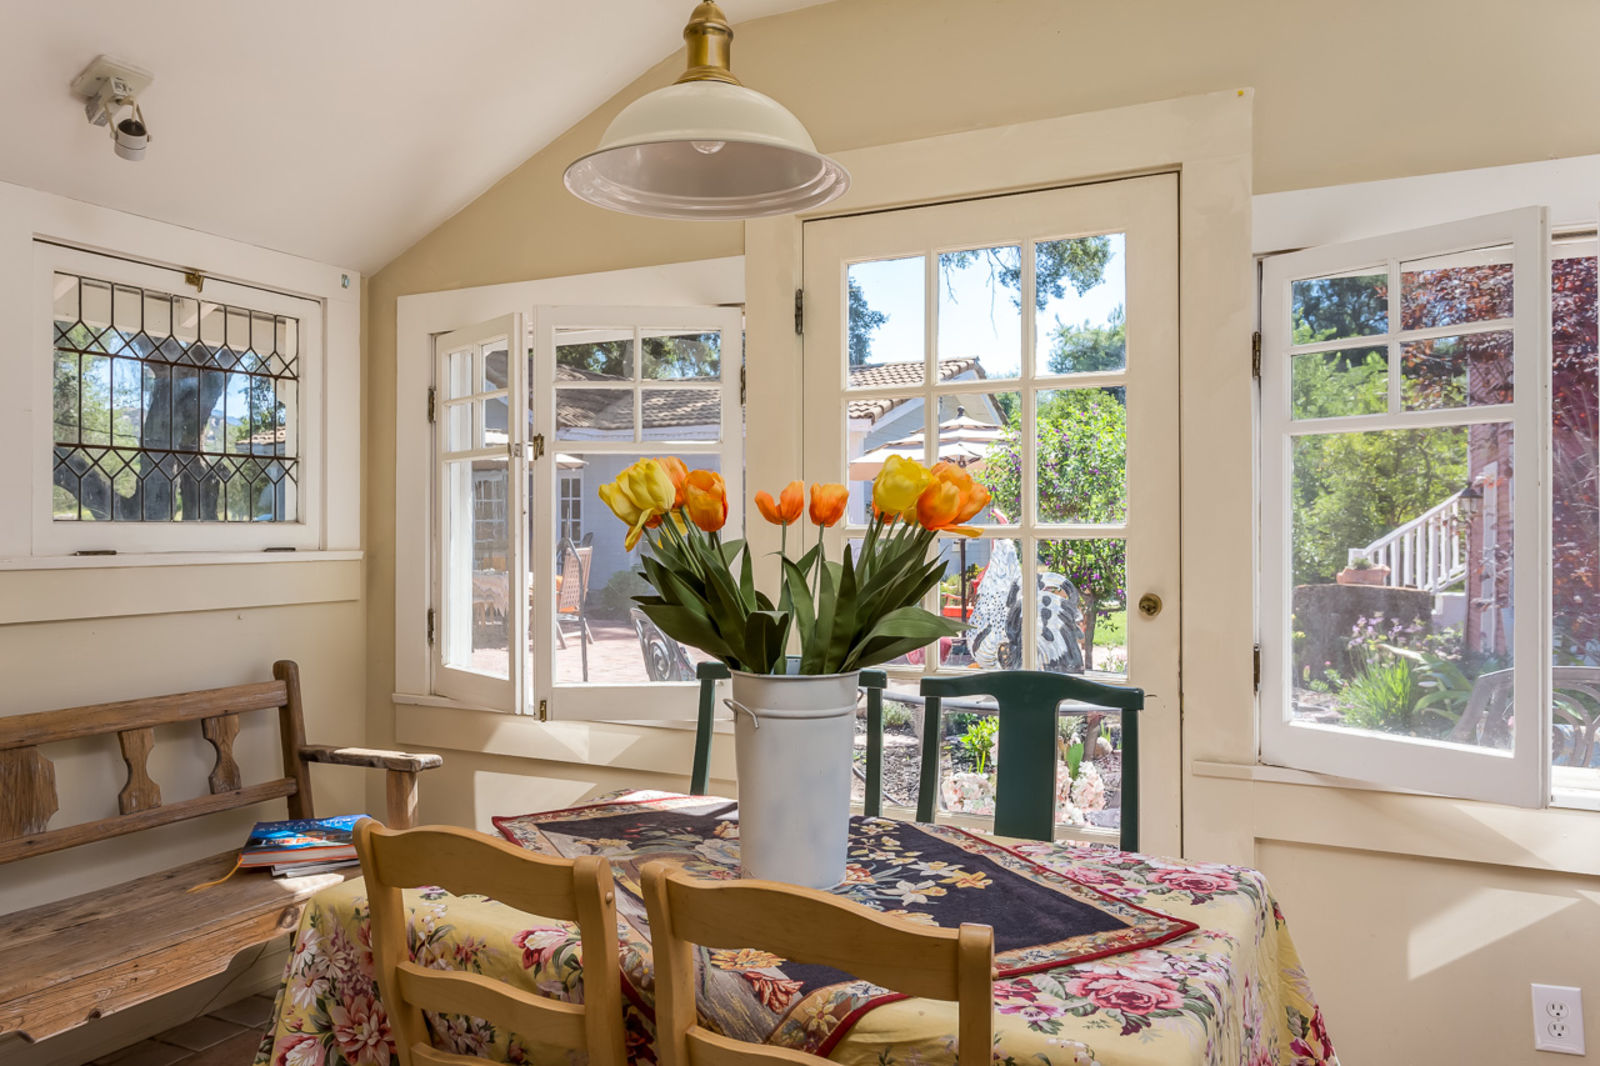 Charming Adobe Home - Breakfast Room with these wonderful vintage windows